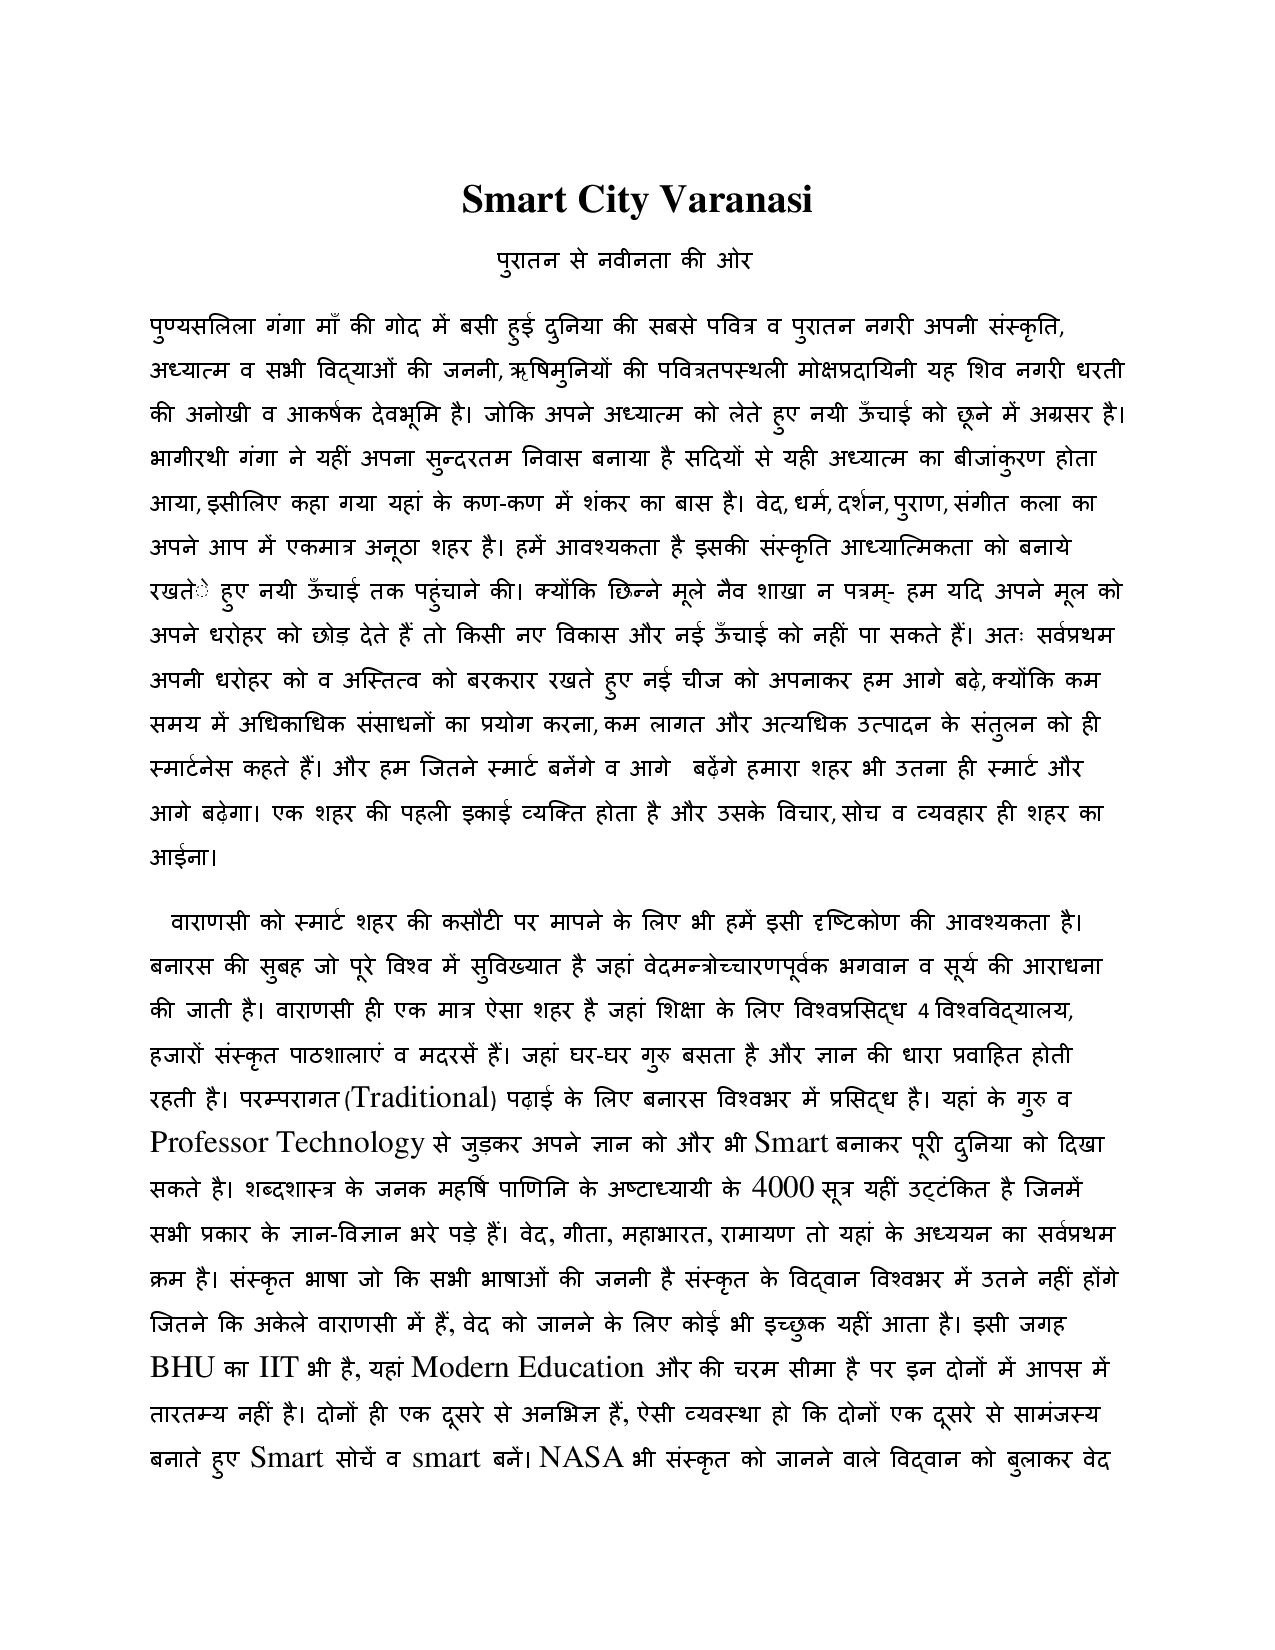 mygov jpg short essay about my city students essays my town social work